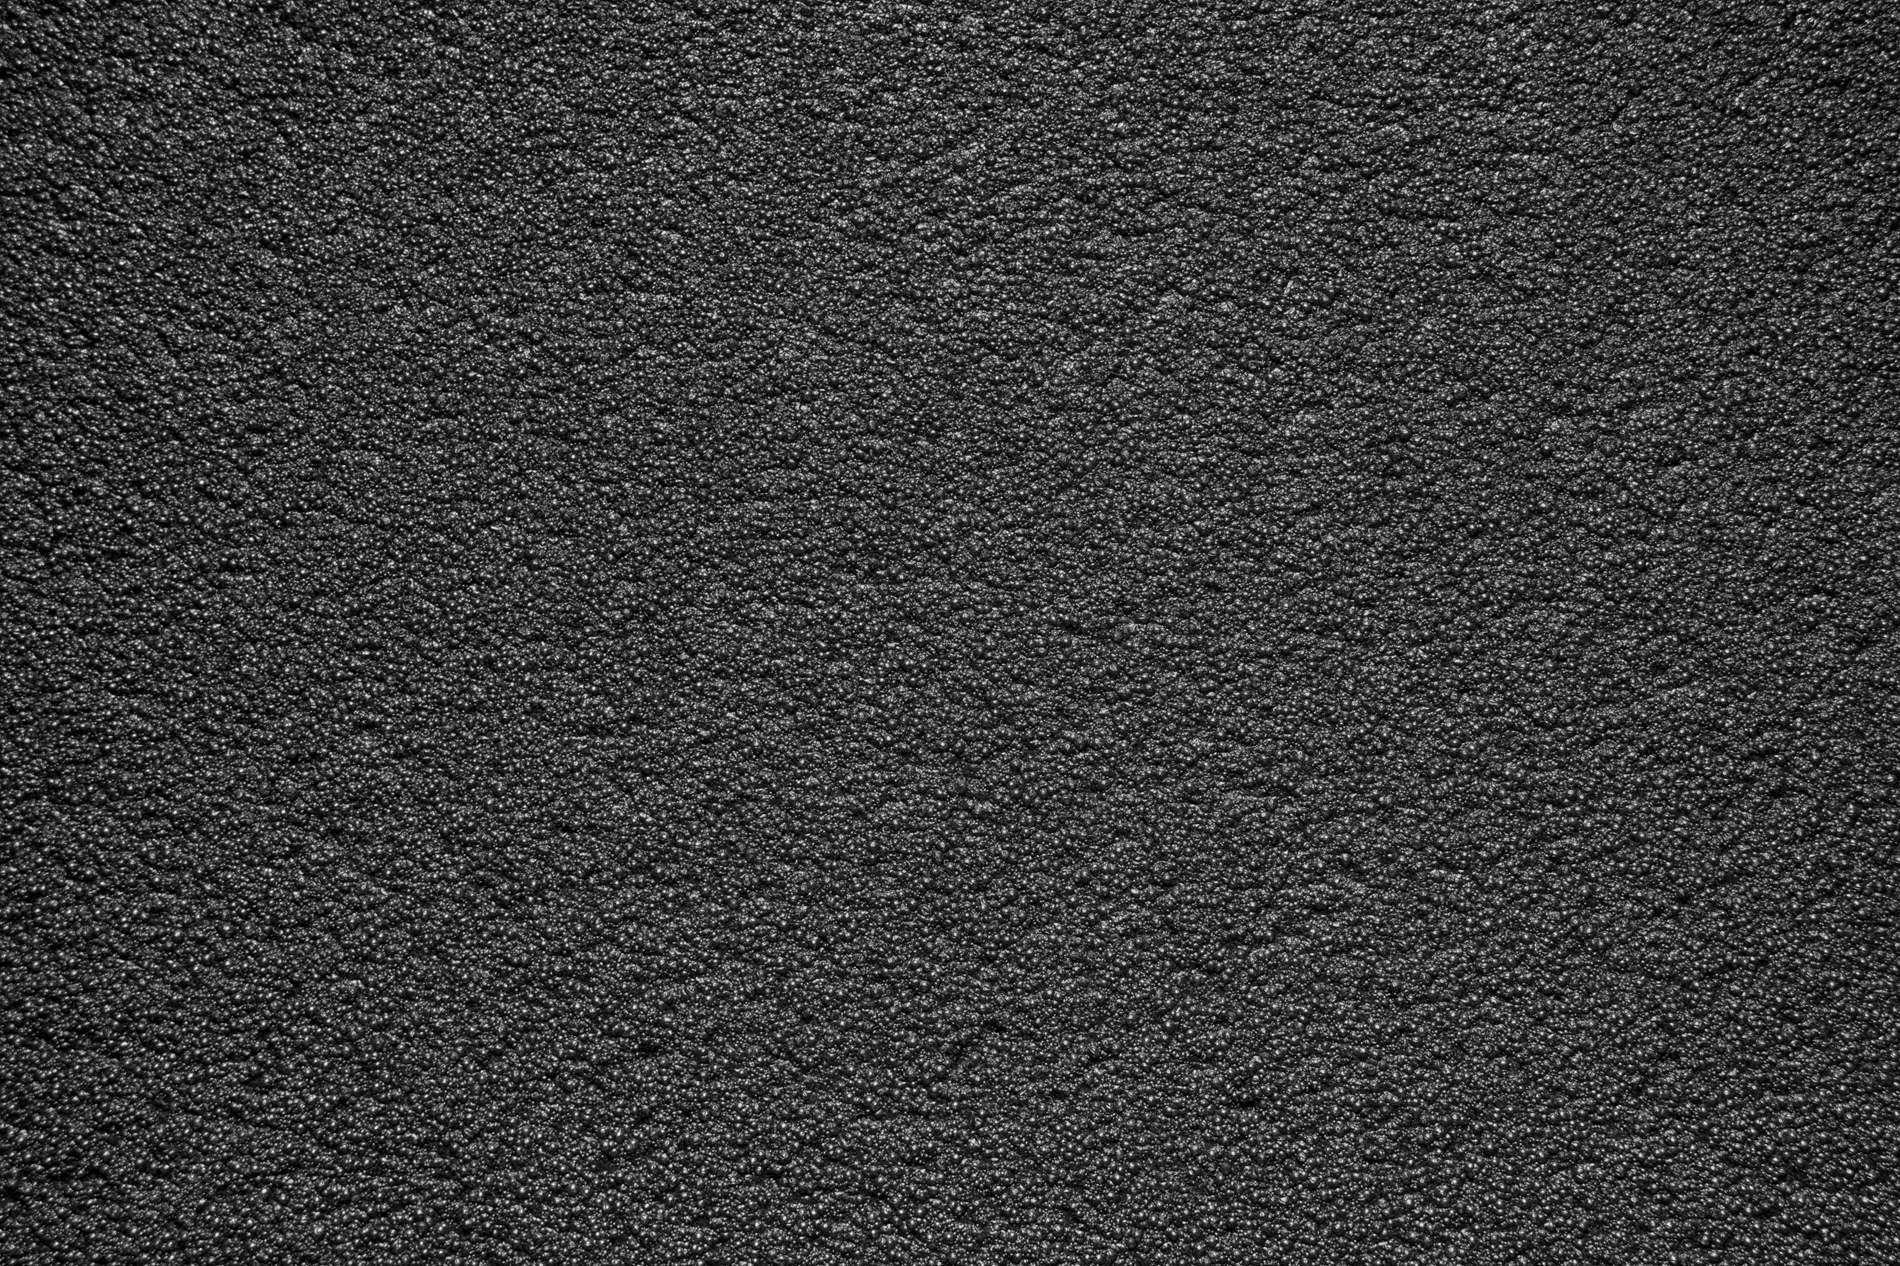 Clean Black Granite Foam Texture